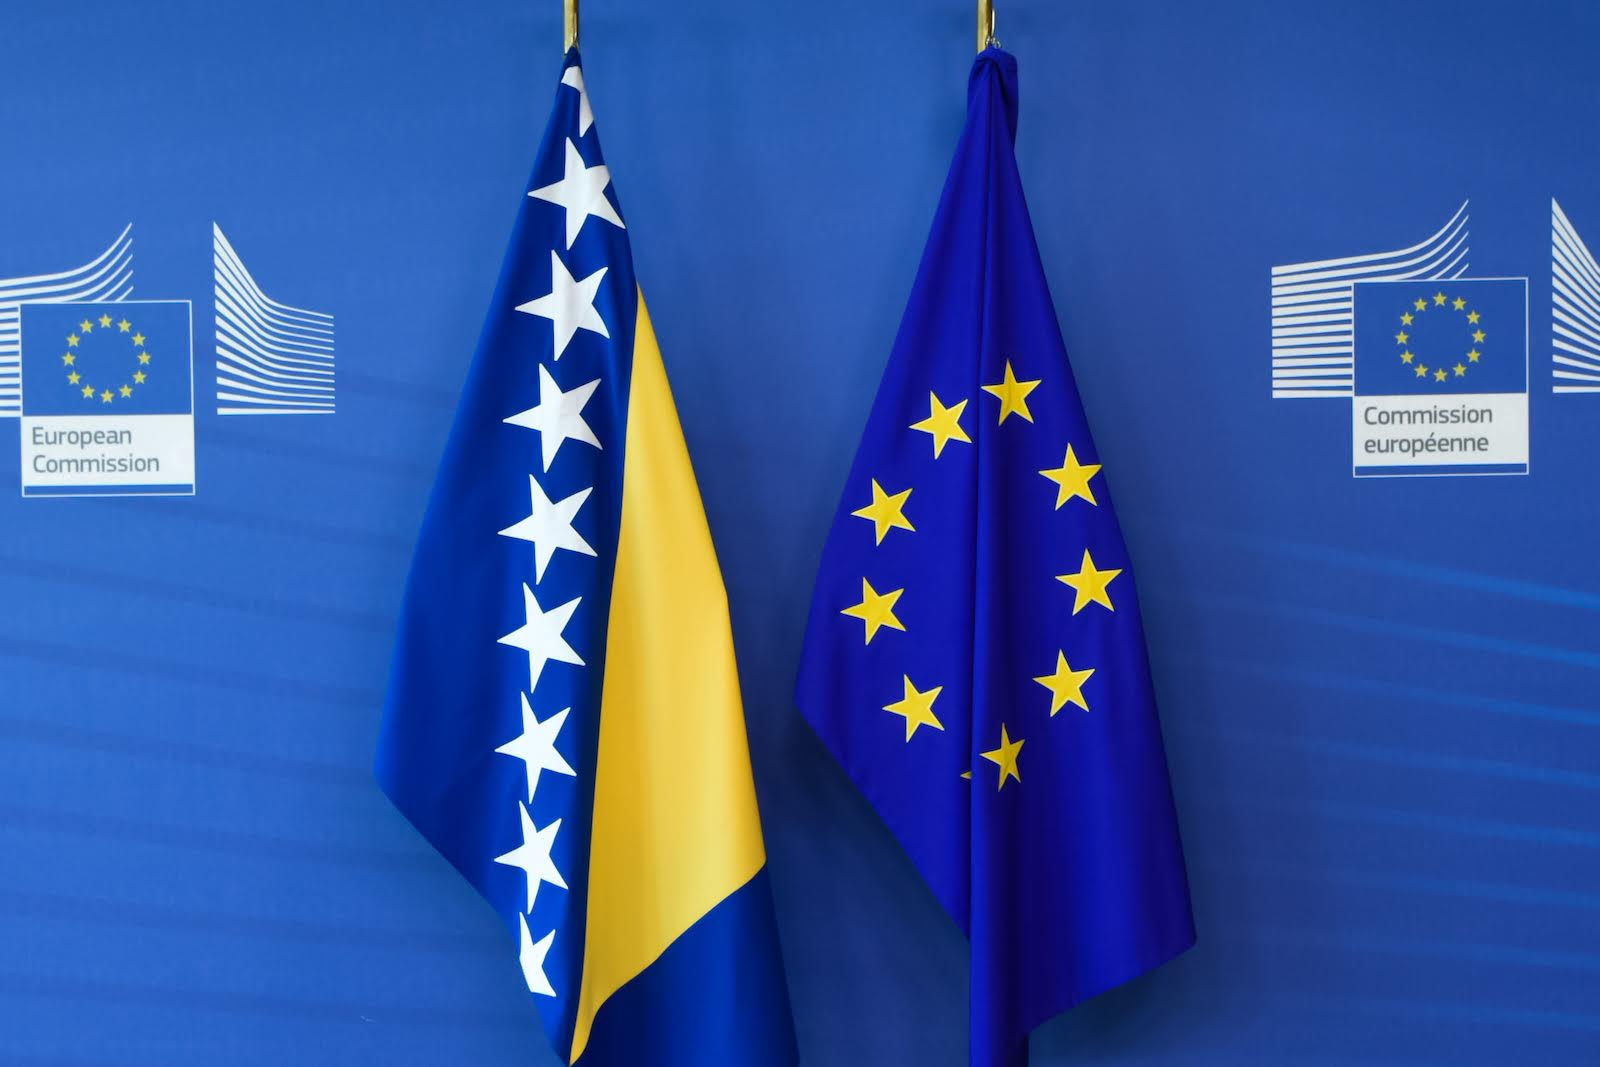 BiH is expecting more financial support thanks to an EC strategic document